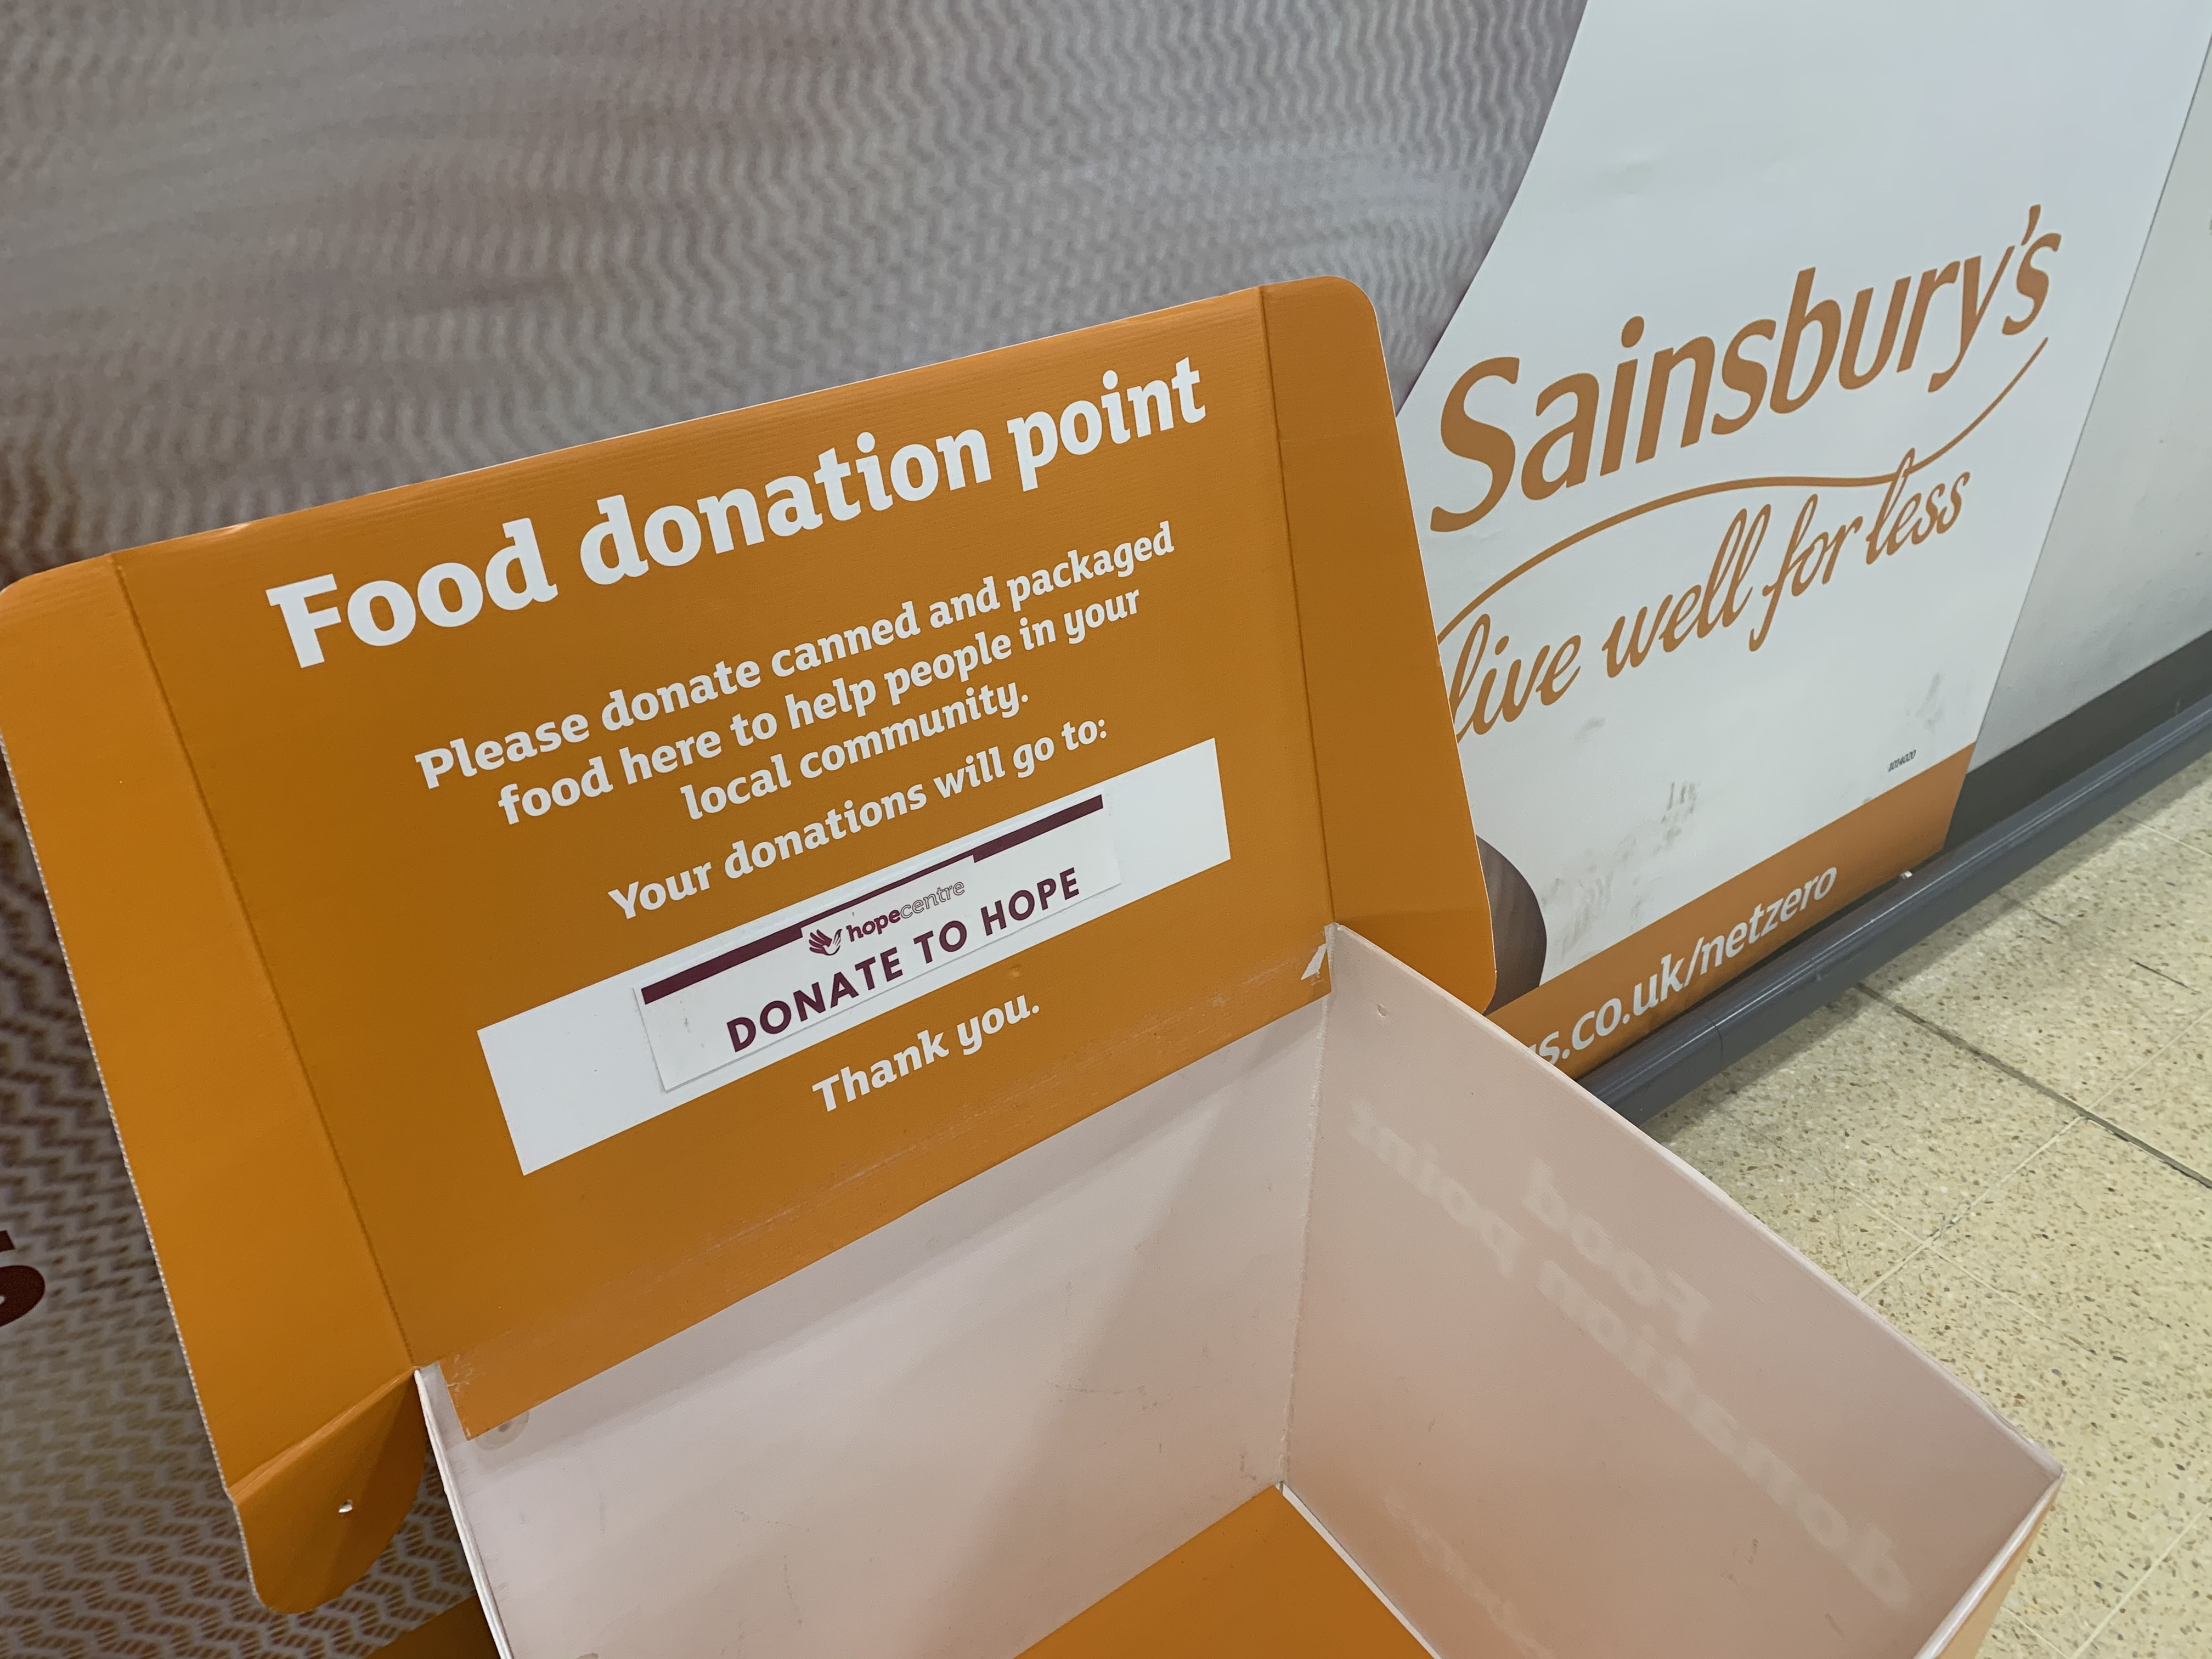 Foodbanks facing imminent crisis point